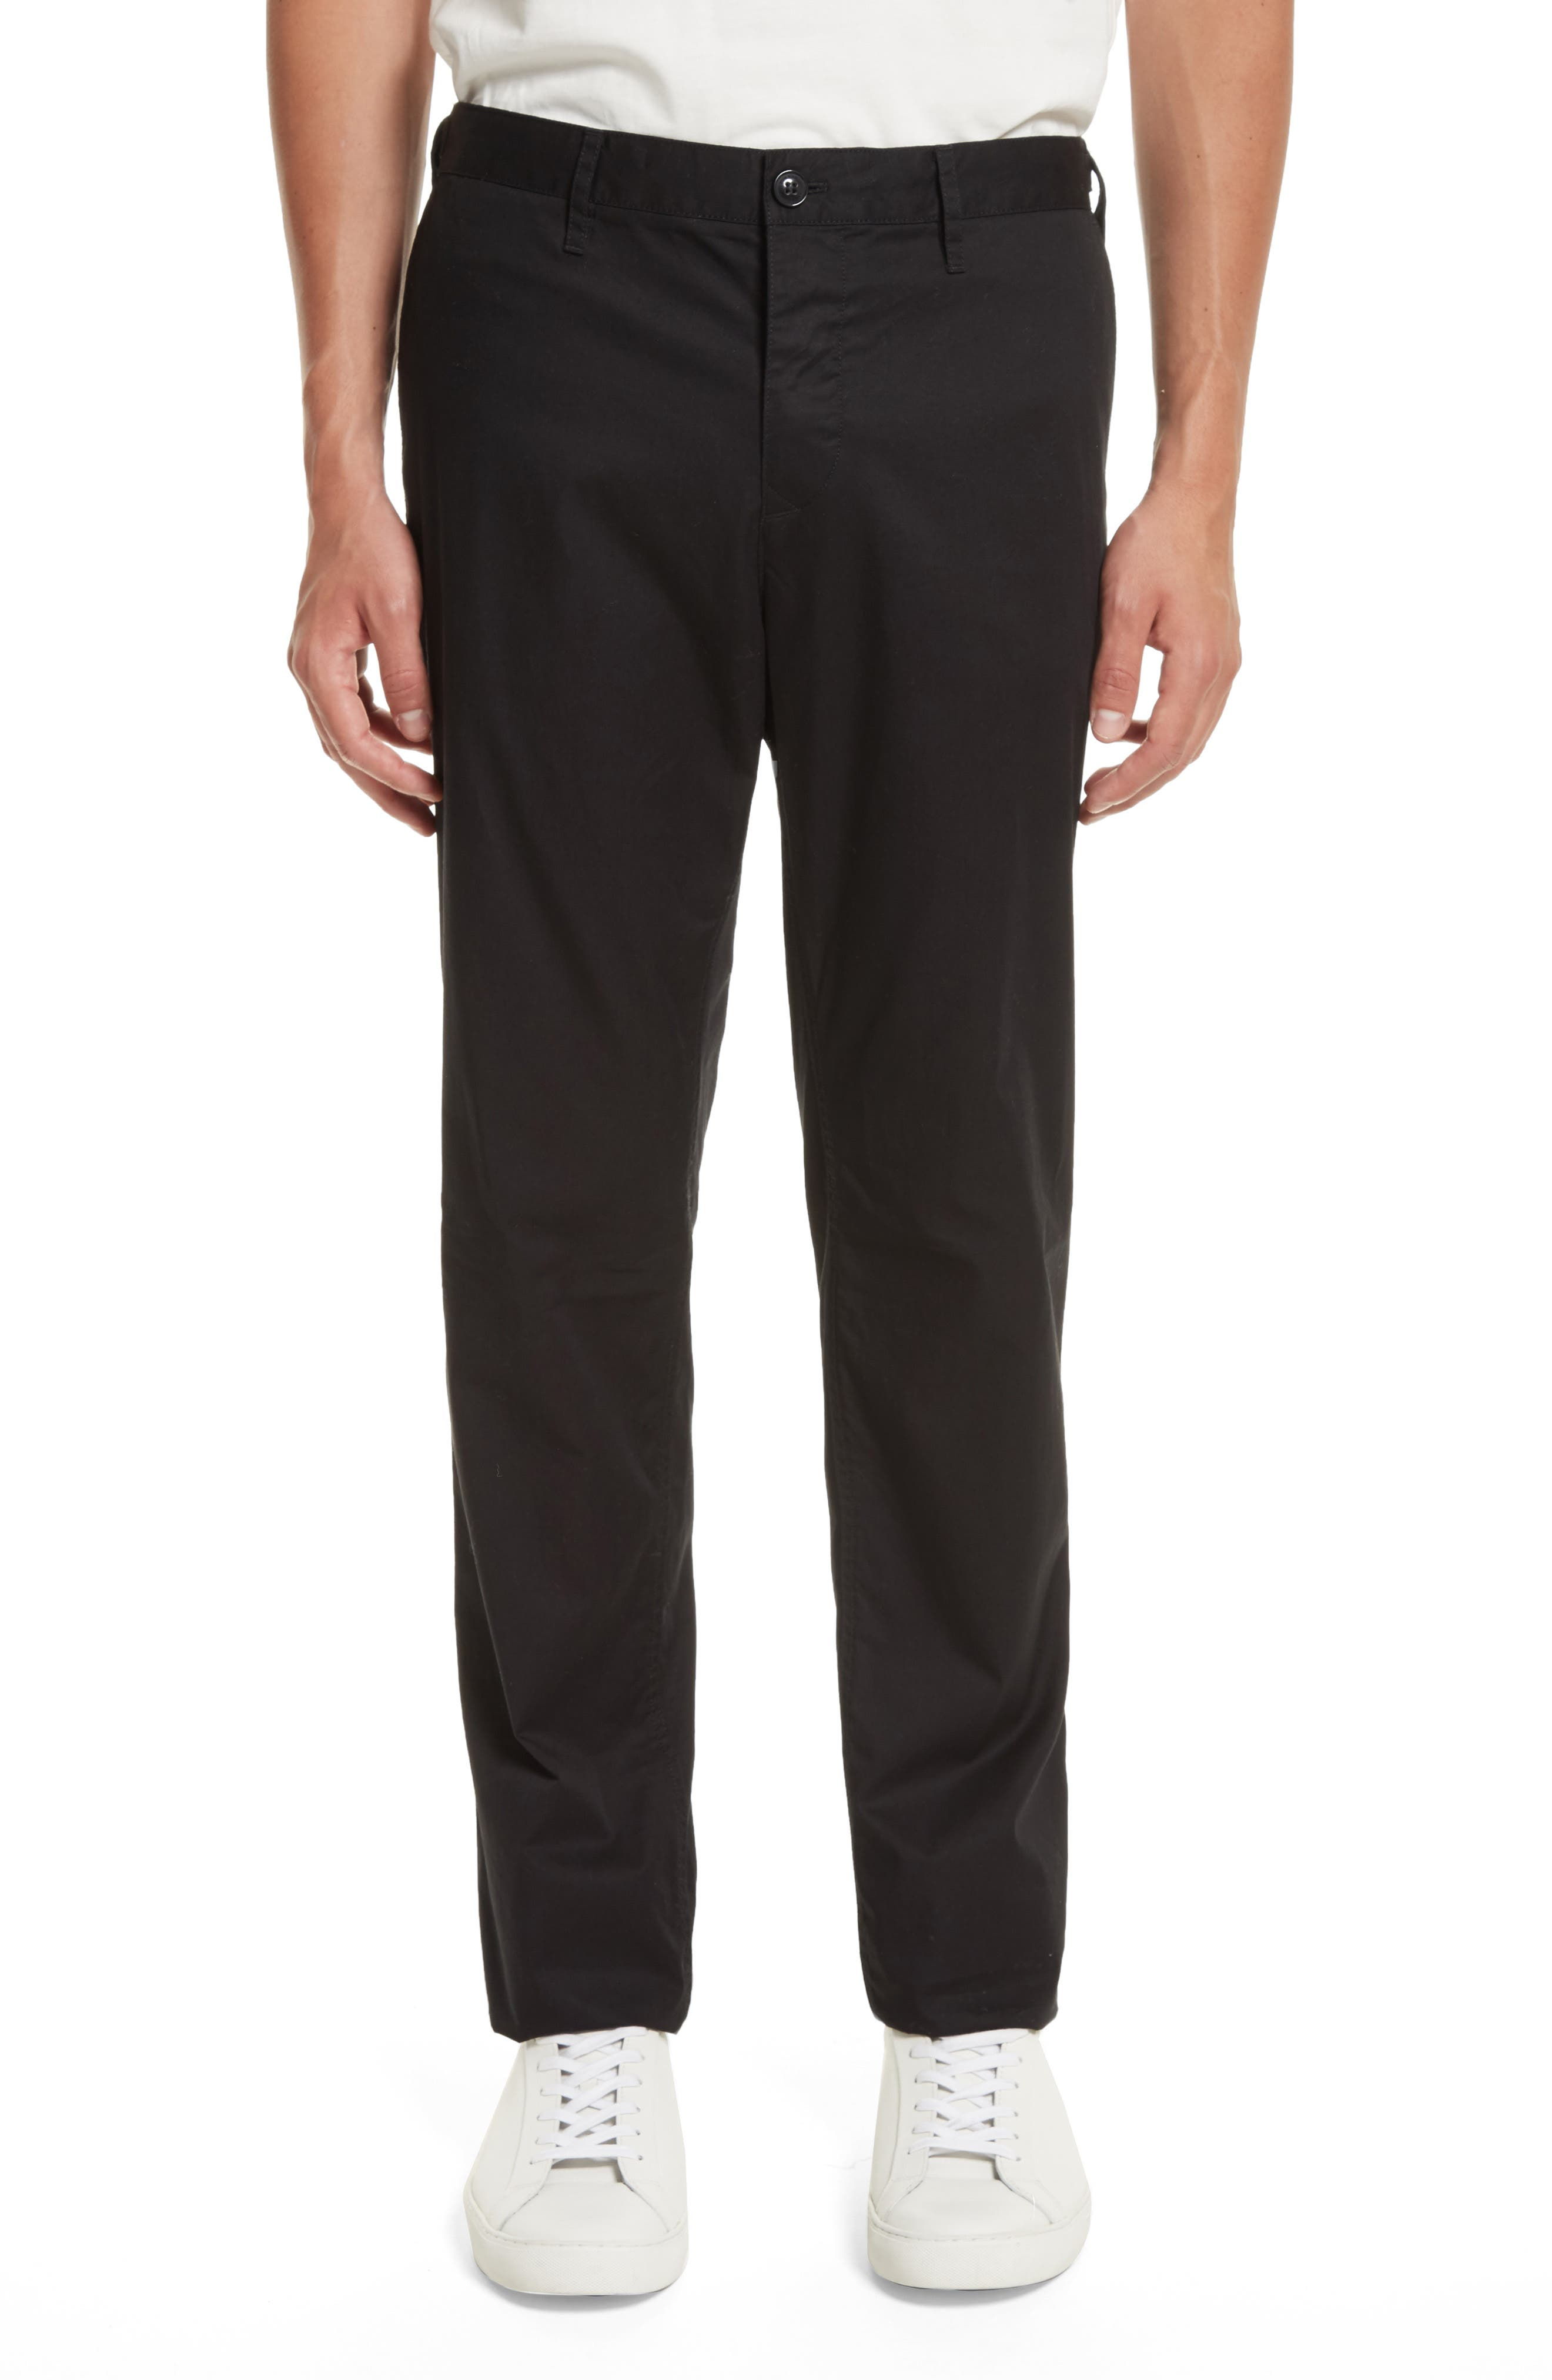 Burberry Straight Leg Chinos